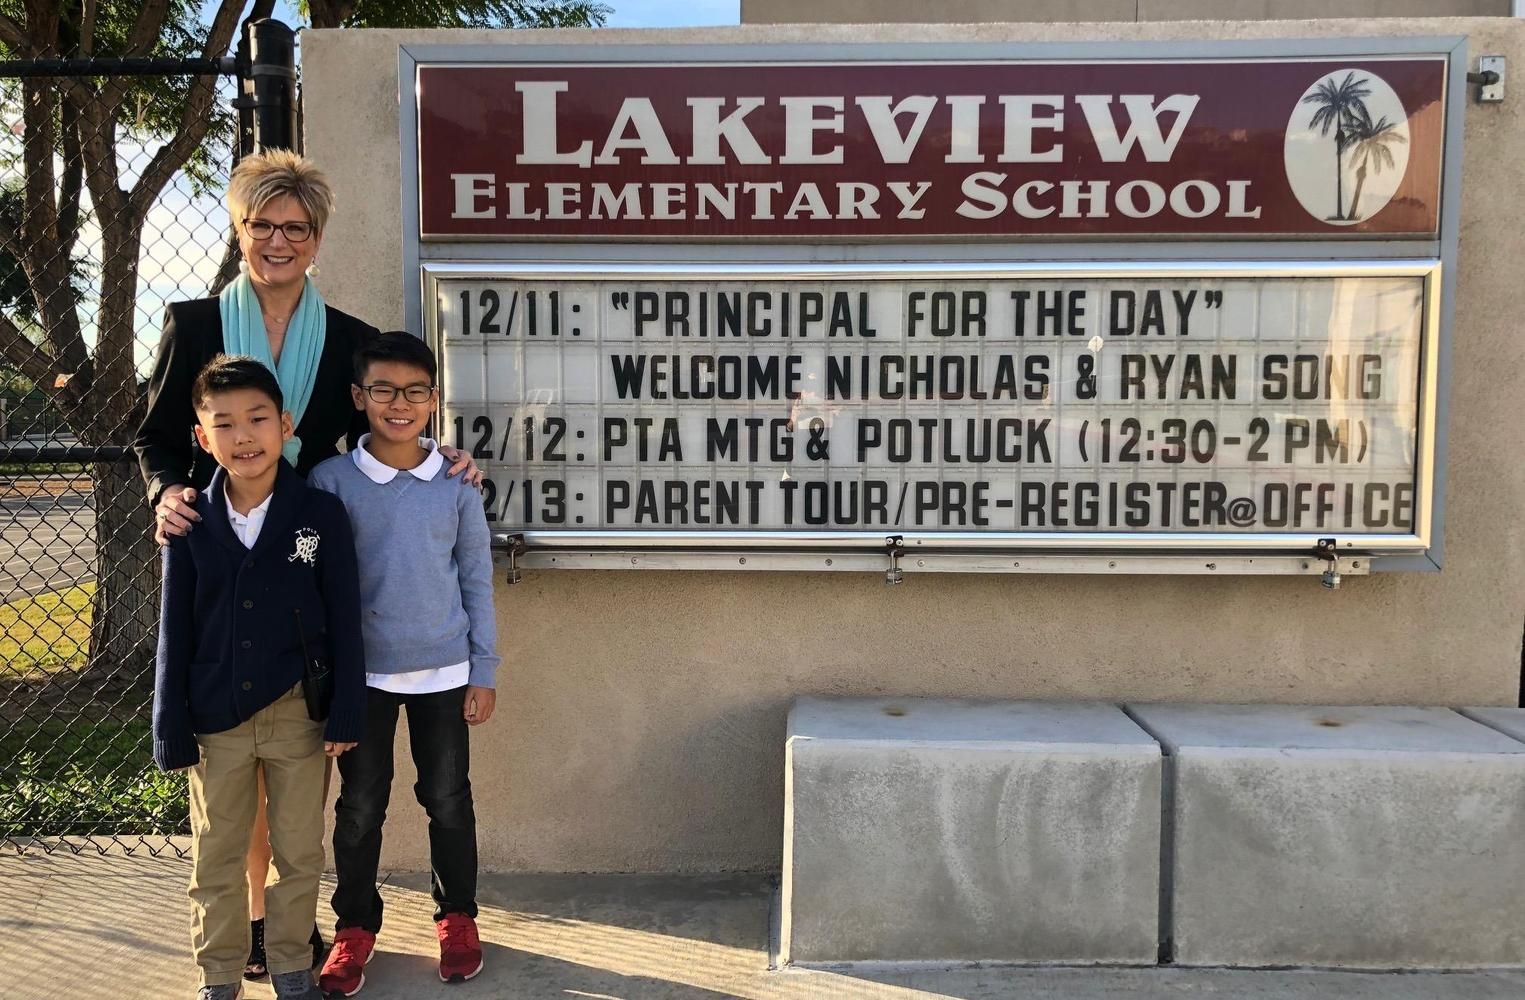 Brothers who were Principals for the Day